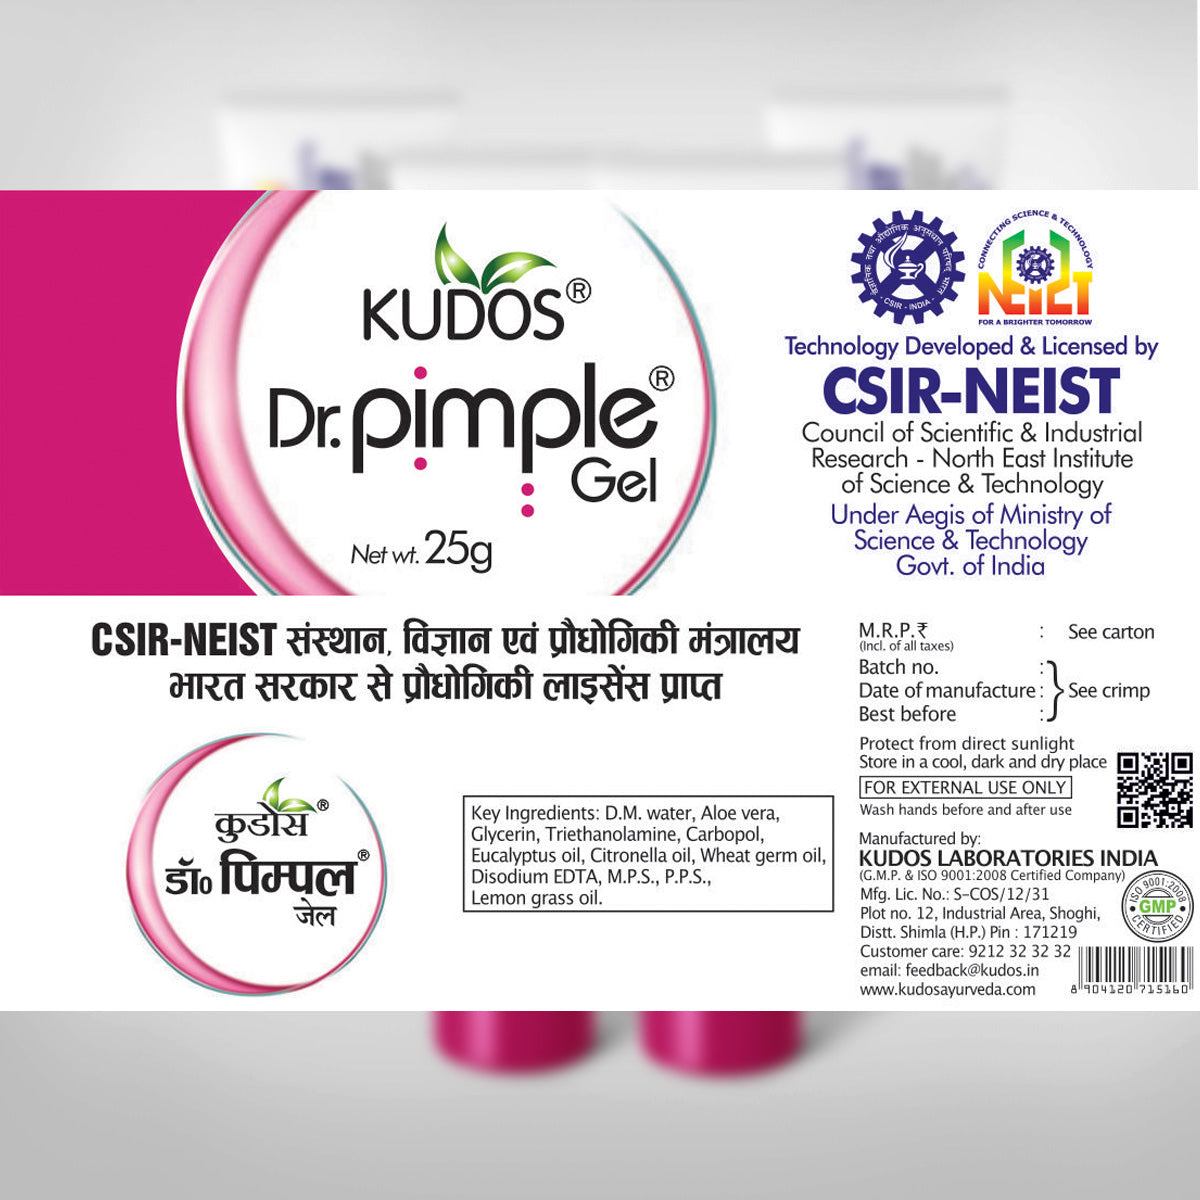 Pimple Care Kit 1 and KIT 2 NON-STEROIDAL AYURVEDA